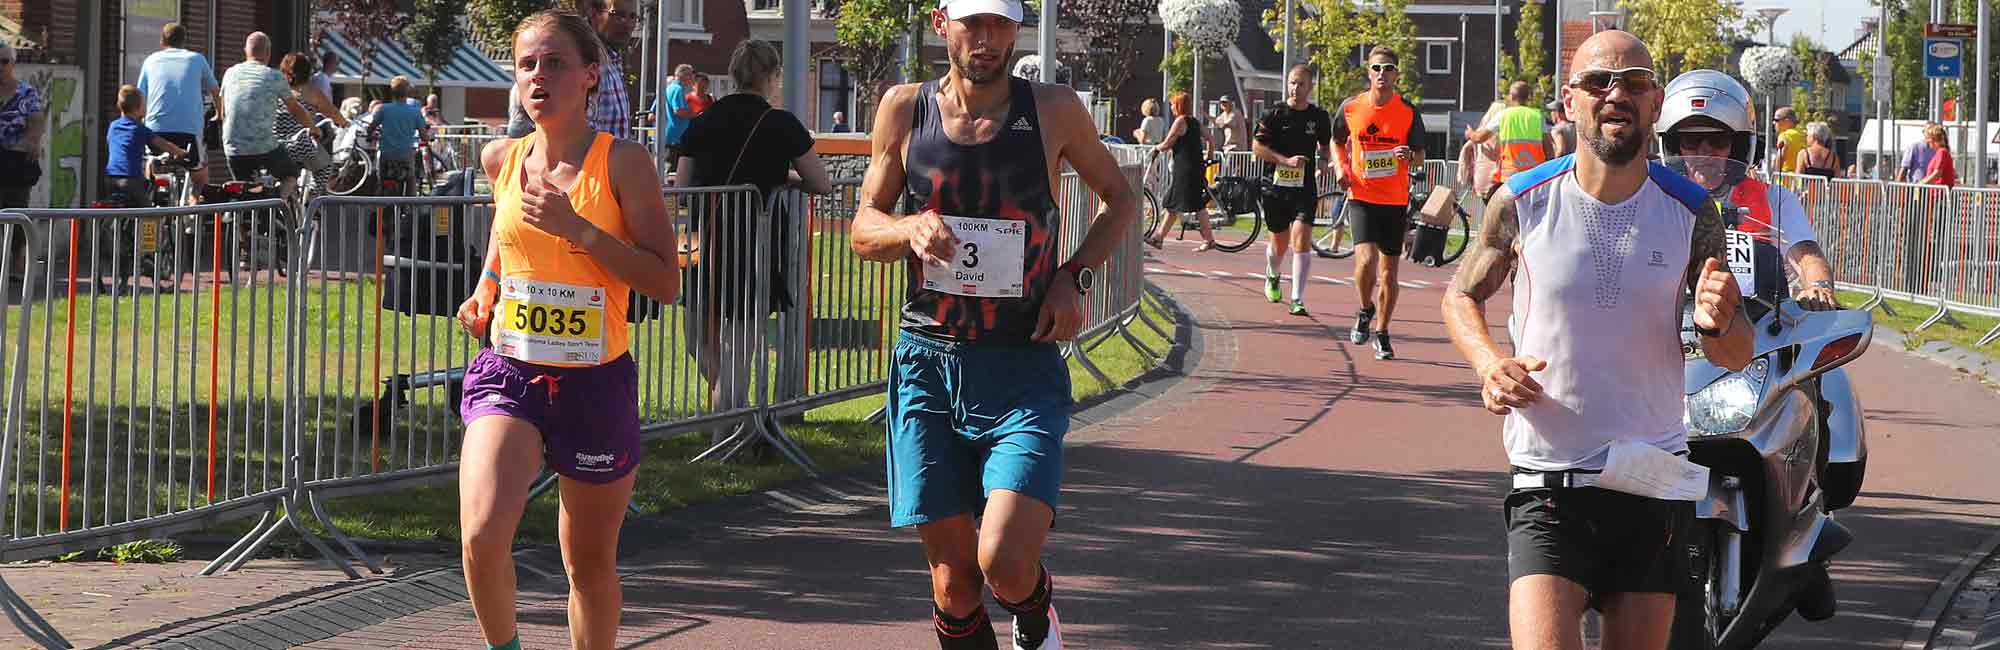 13 en 14 september 2019 - RUN Winschoten